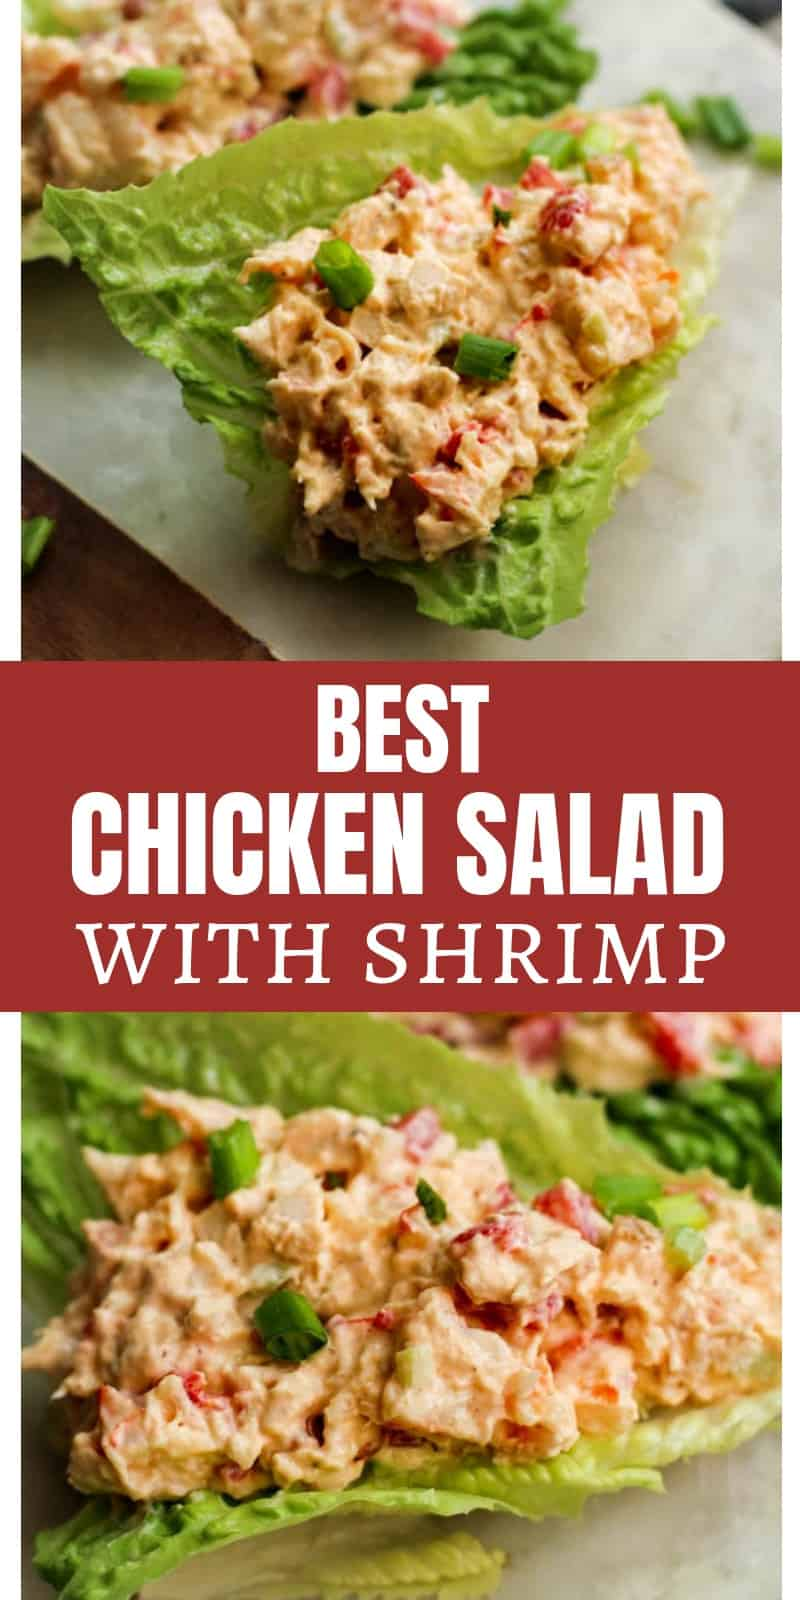 Best Chicken Salad with Shrimp Recipe on Lettuce Boats